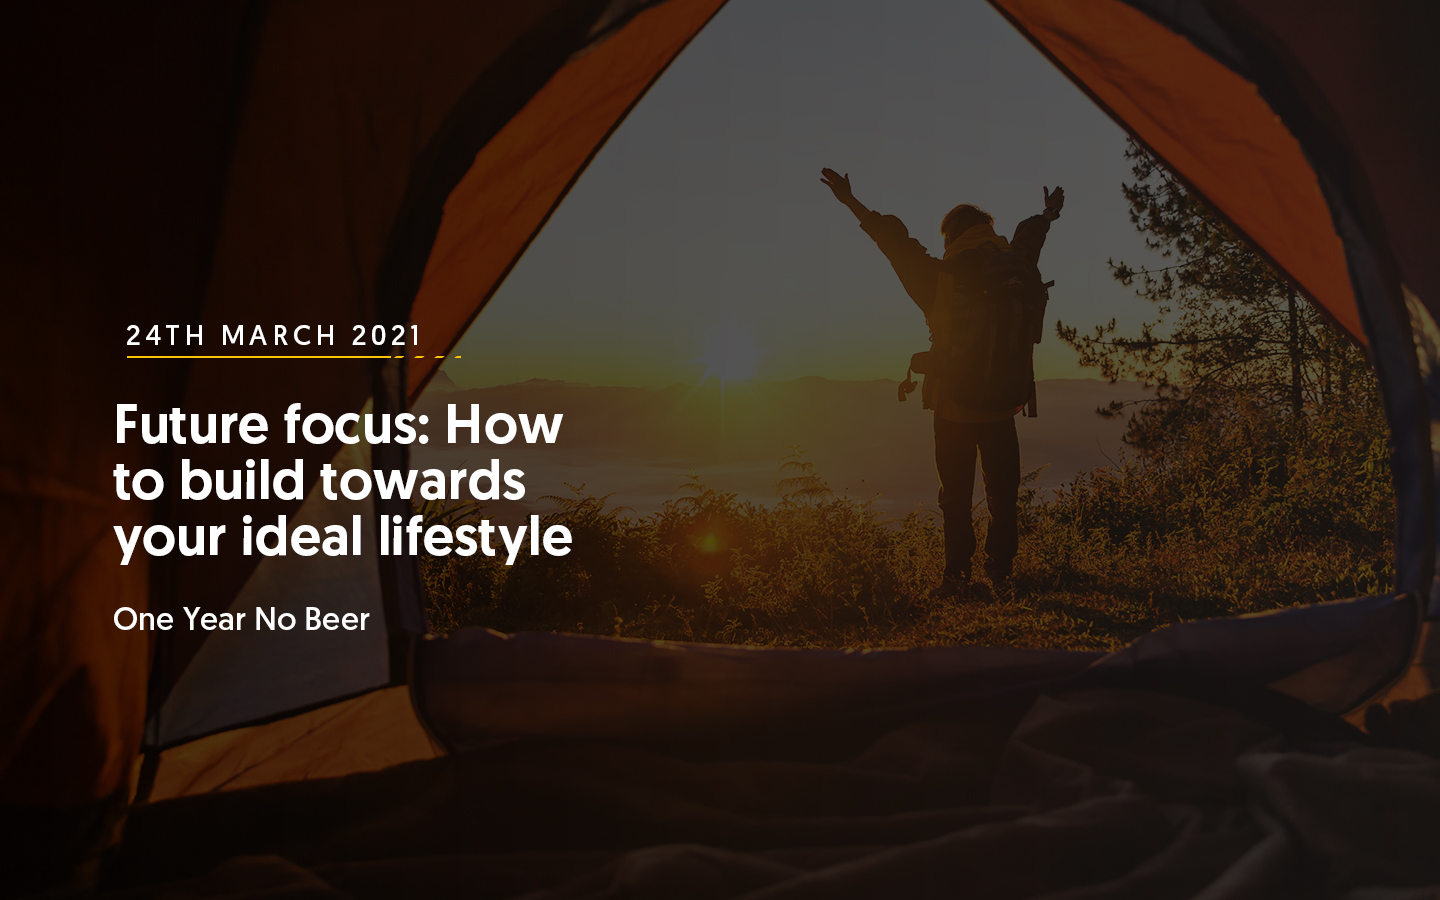 Future focus: How to build towards your ideal lifestyle